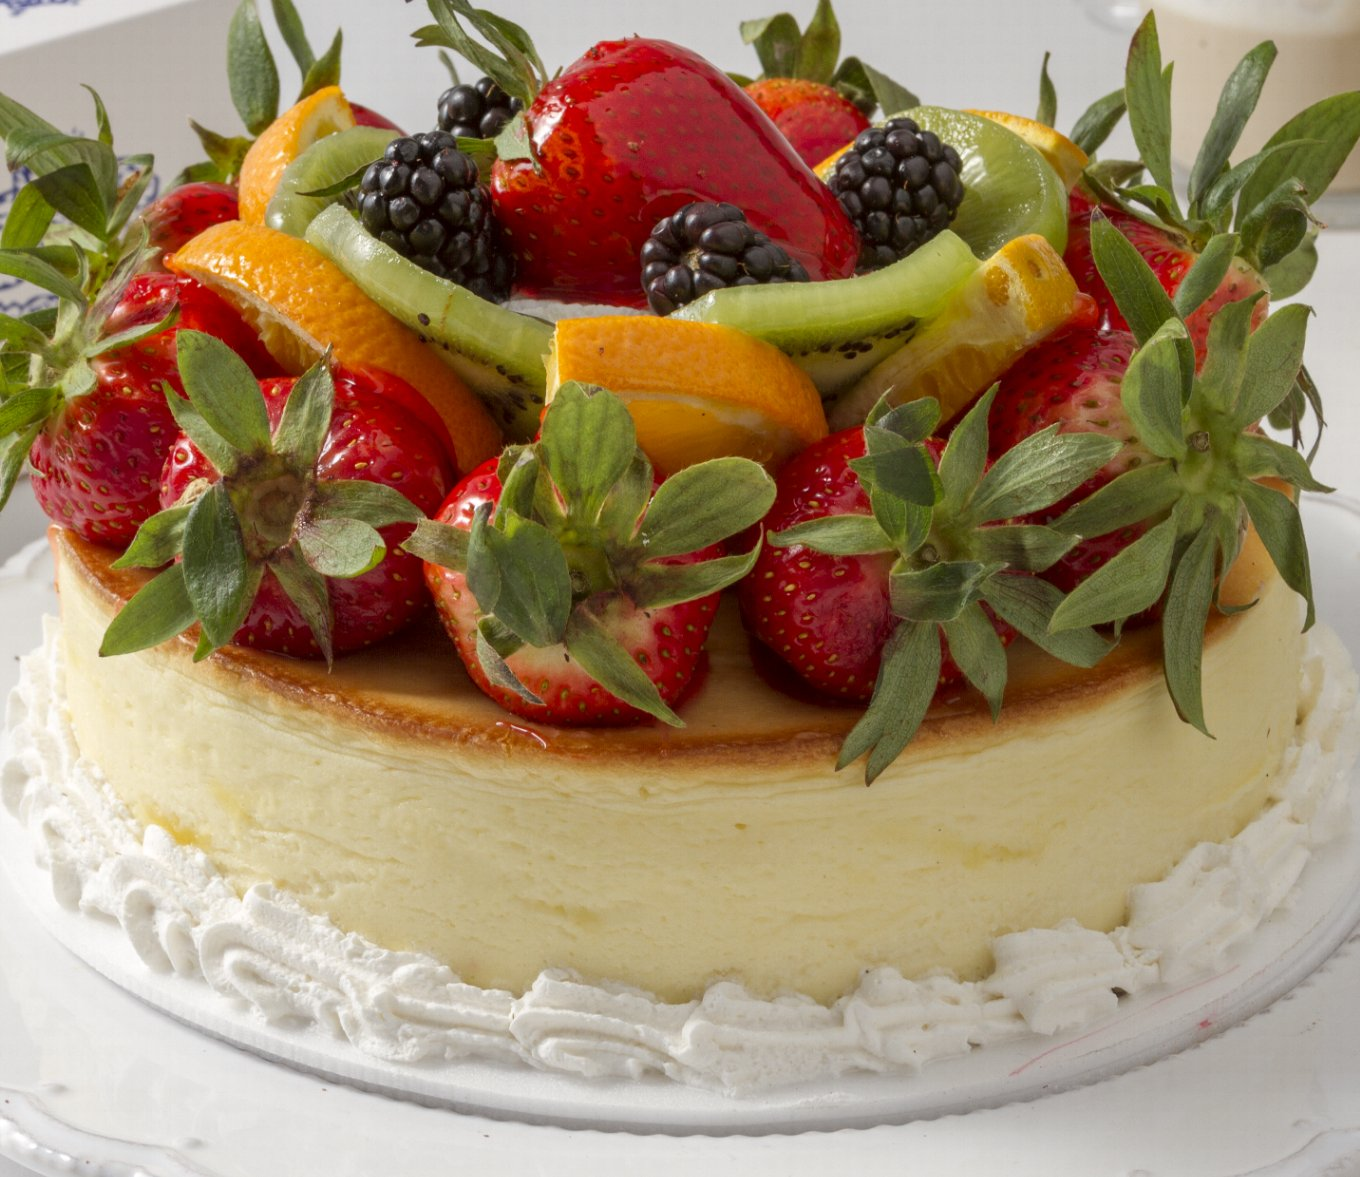 Cheesecake with mixed fruits. For Local Delivery or Curbside Pickup ONLY